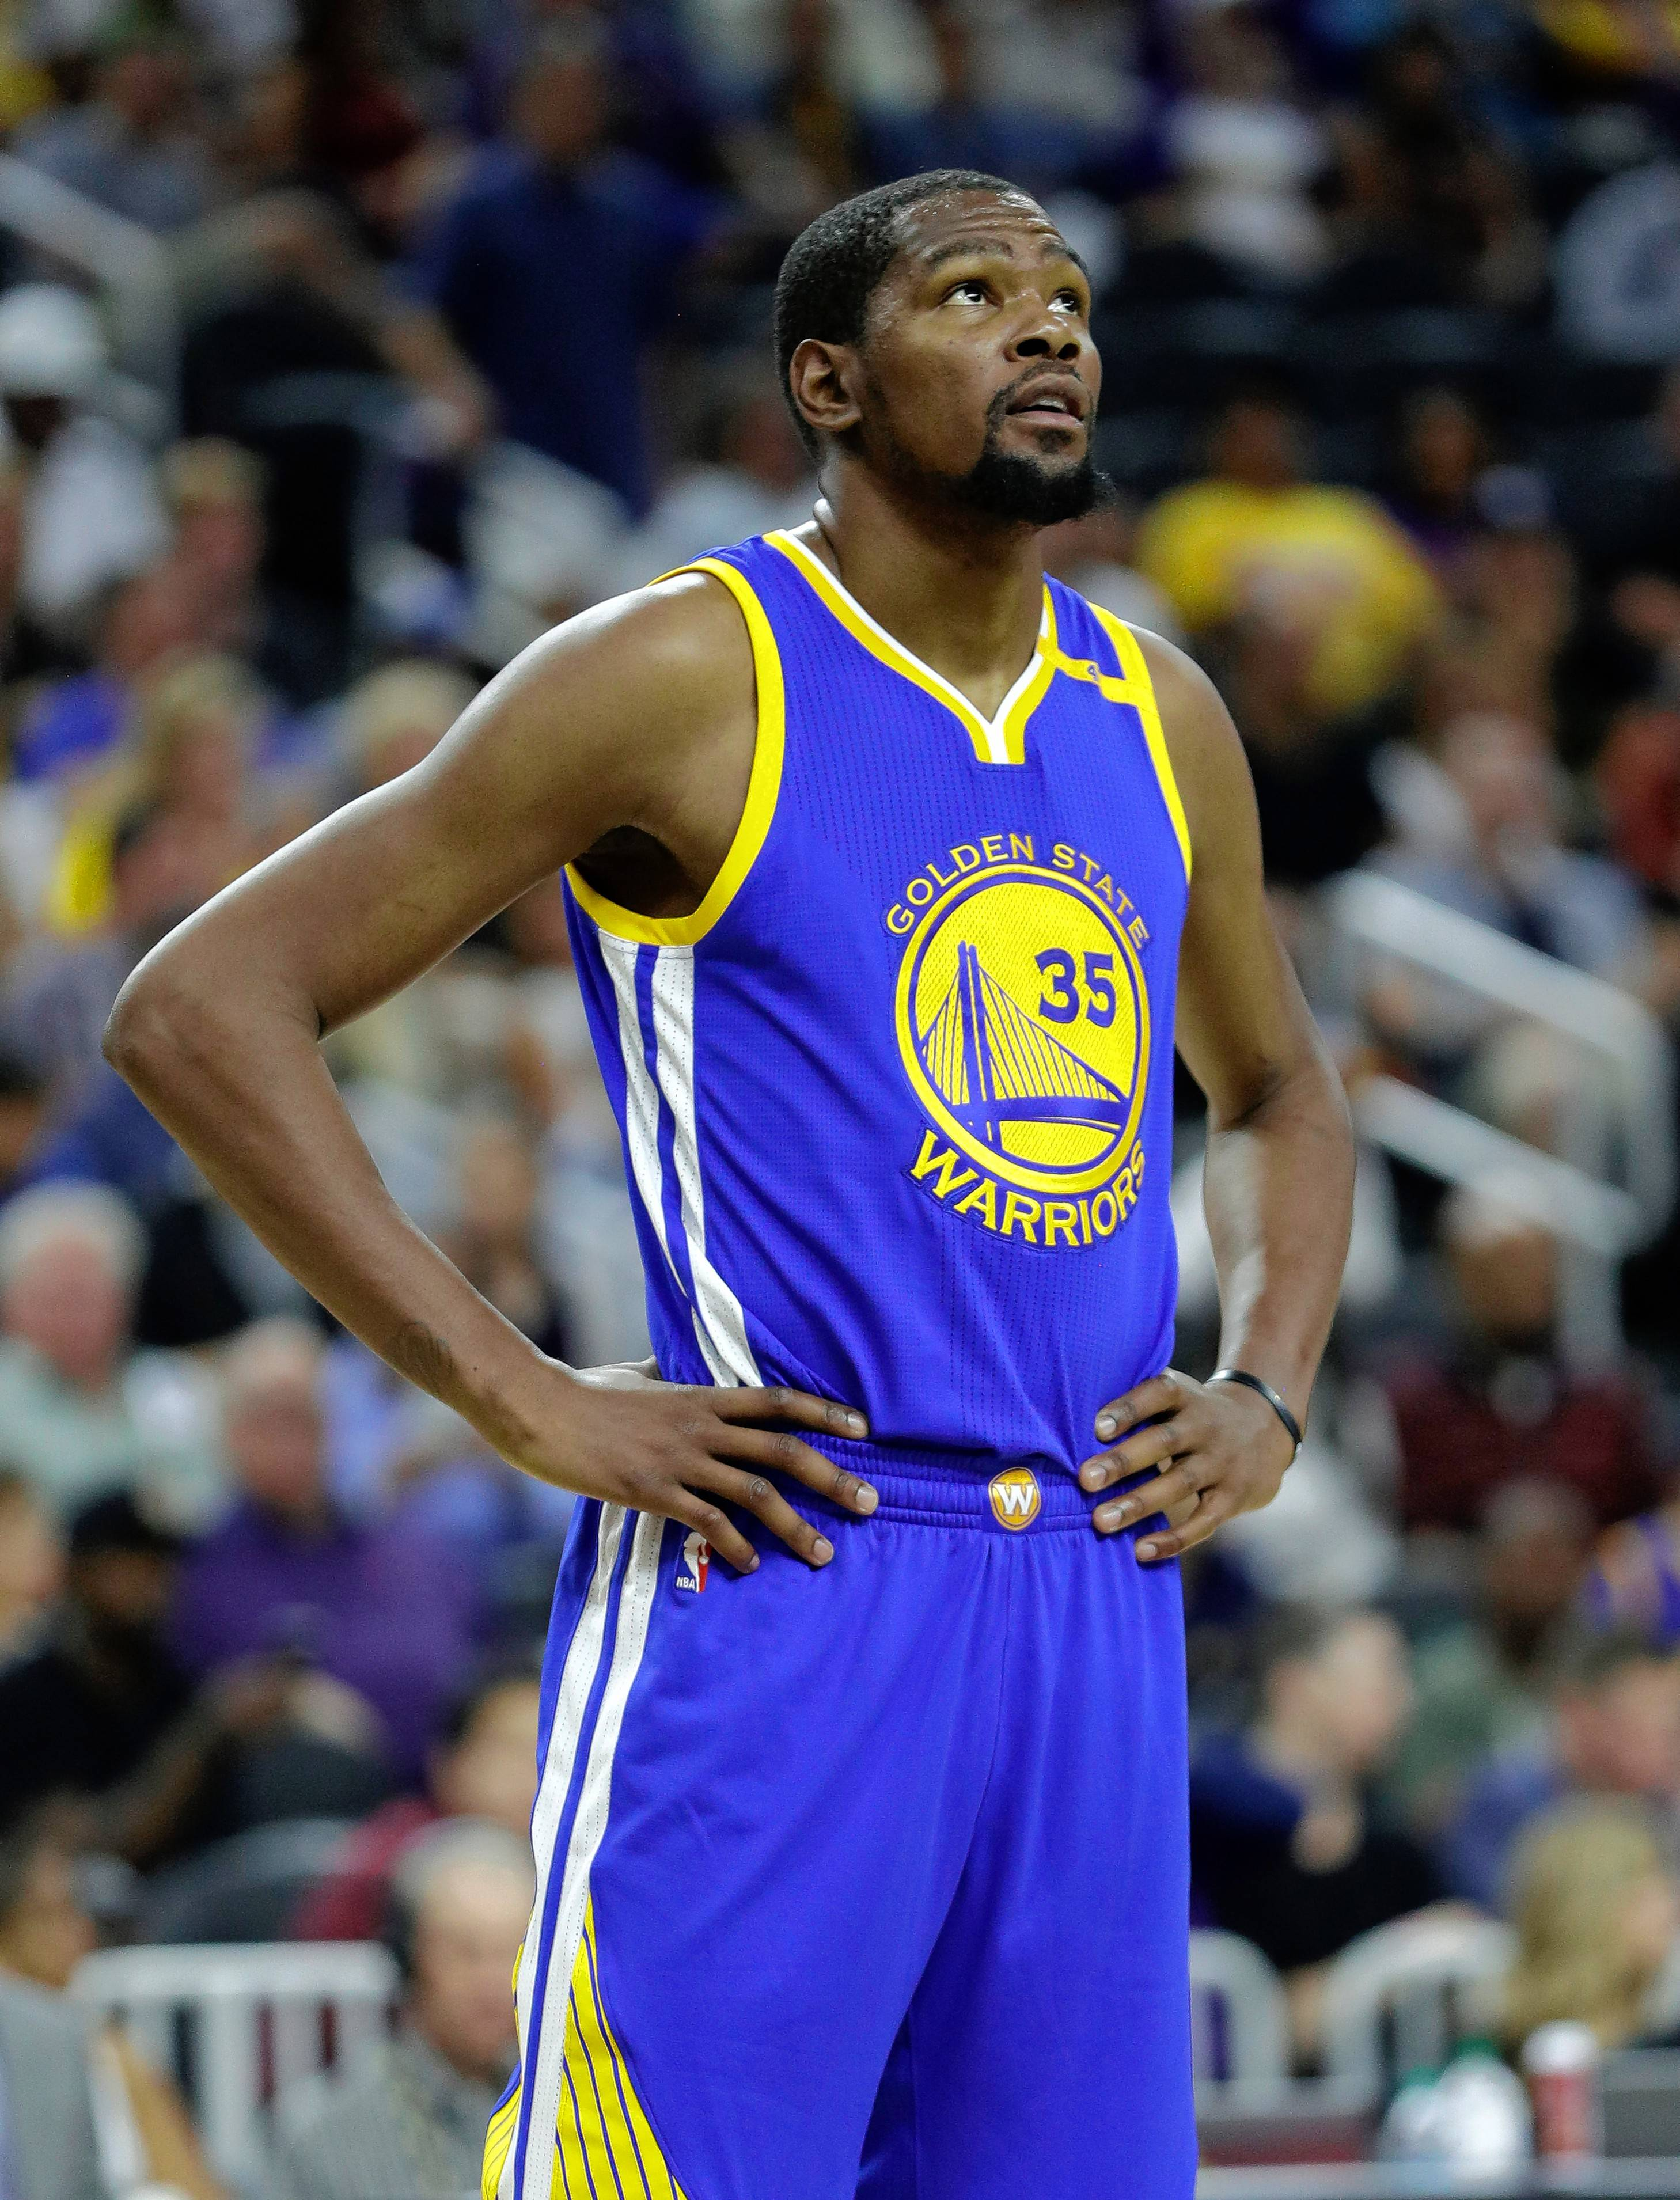 Kevin Durant joining the already-strong Golden State Warriors is the dominant theme of the 2016-17 NBA season.